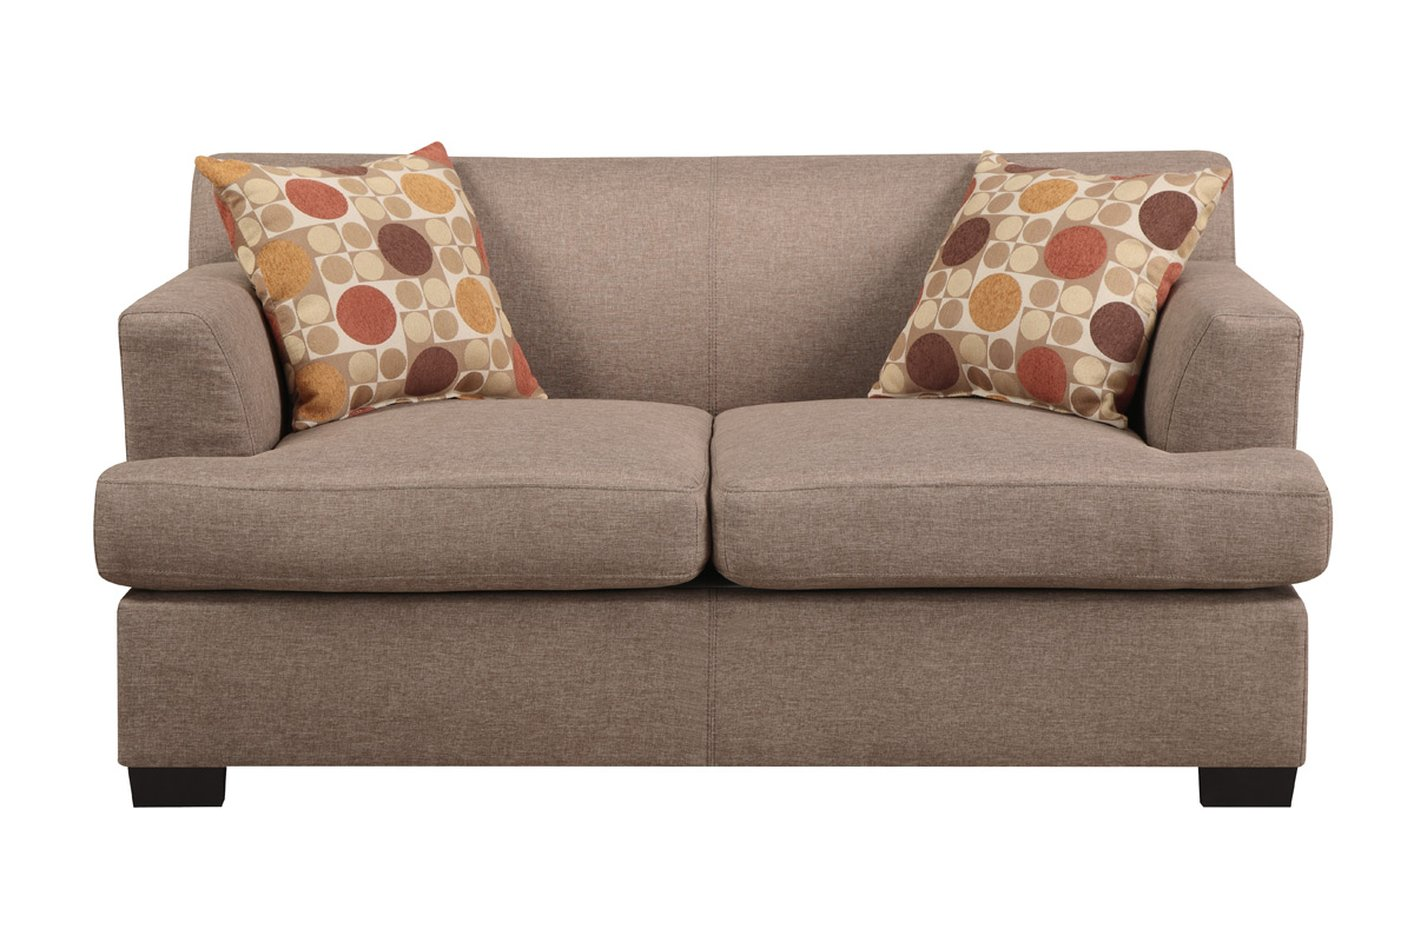 Poundex Montreal V F7967 Beige Fabric Loveseat - Steal-A-Sofa